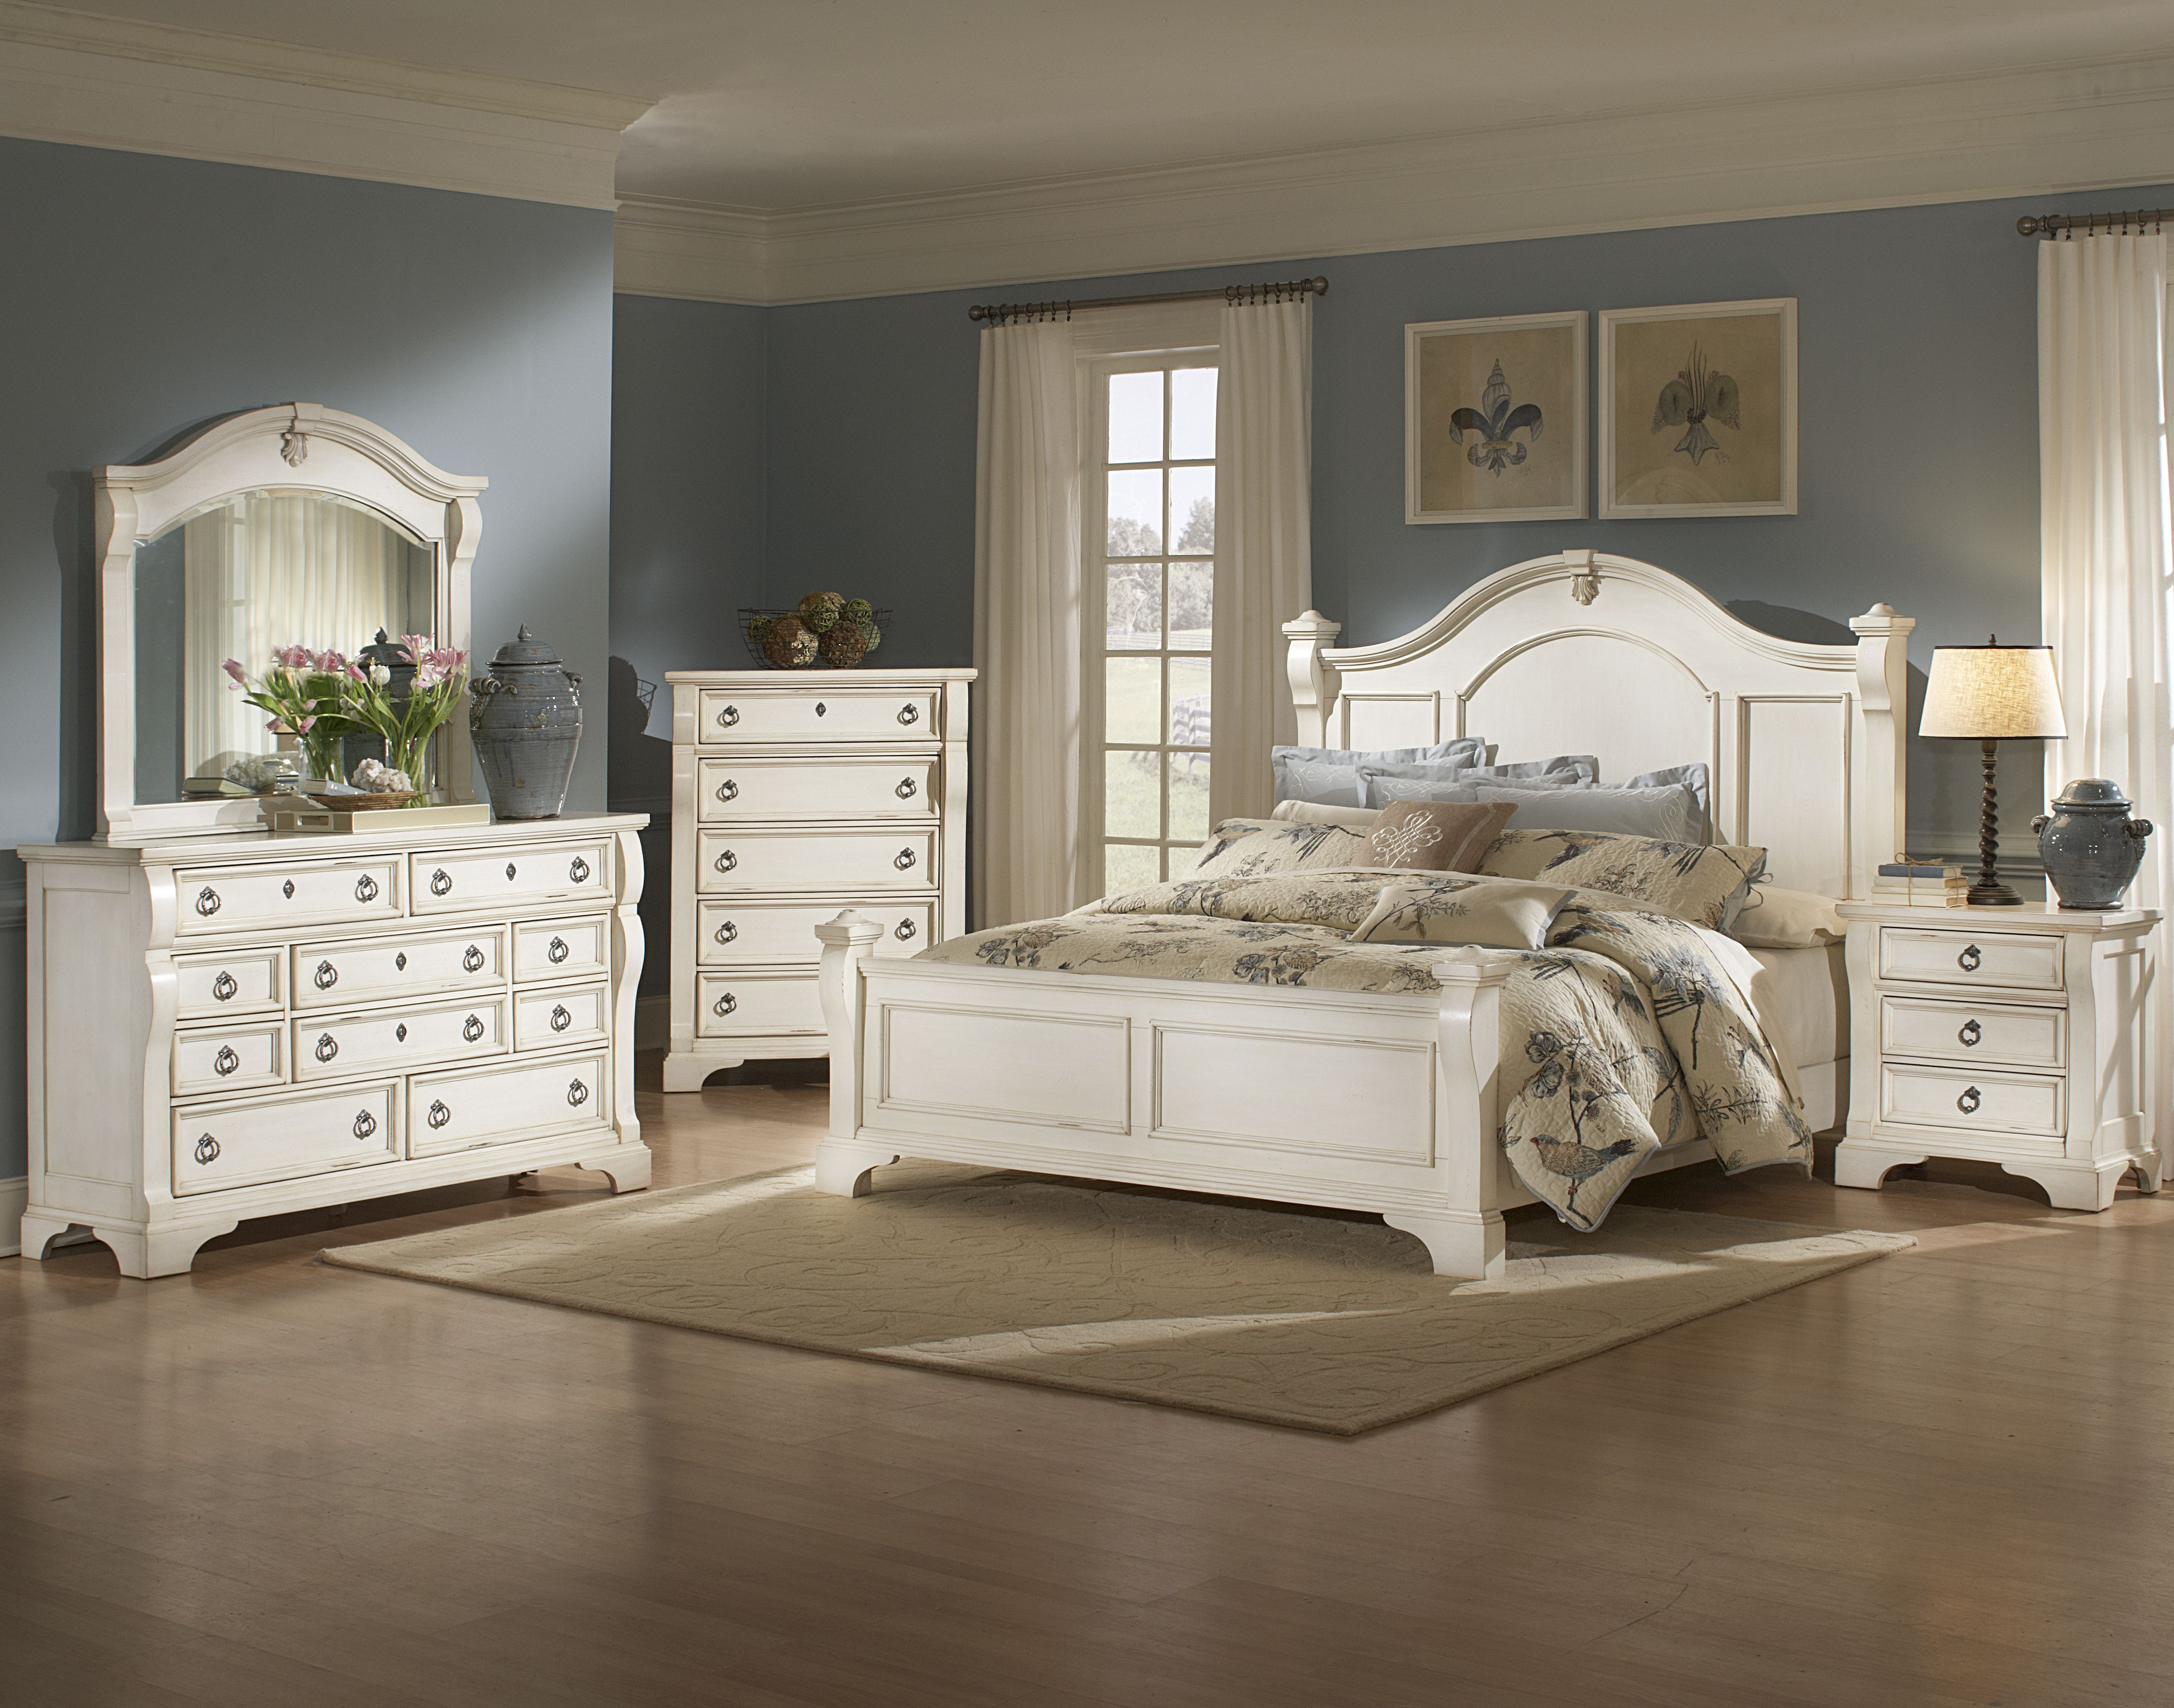 bedroom furniture set white bedrooms with antique | must do soon